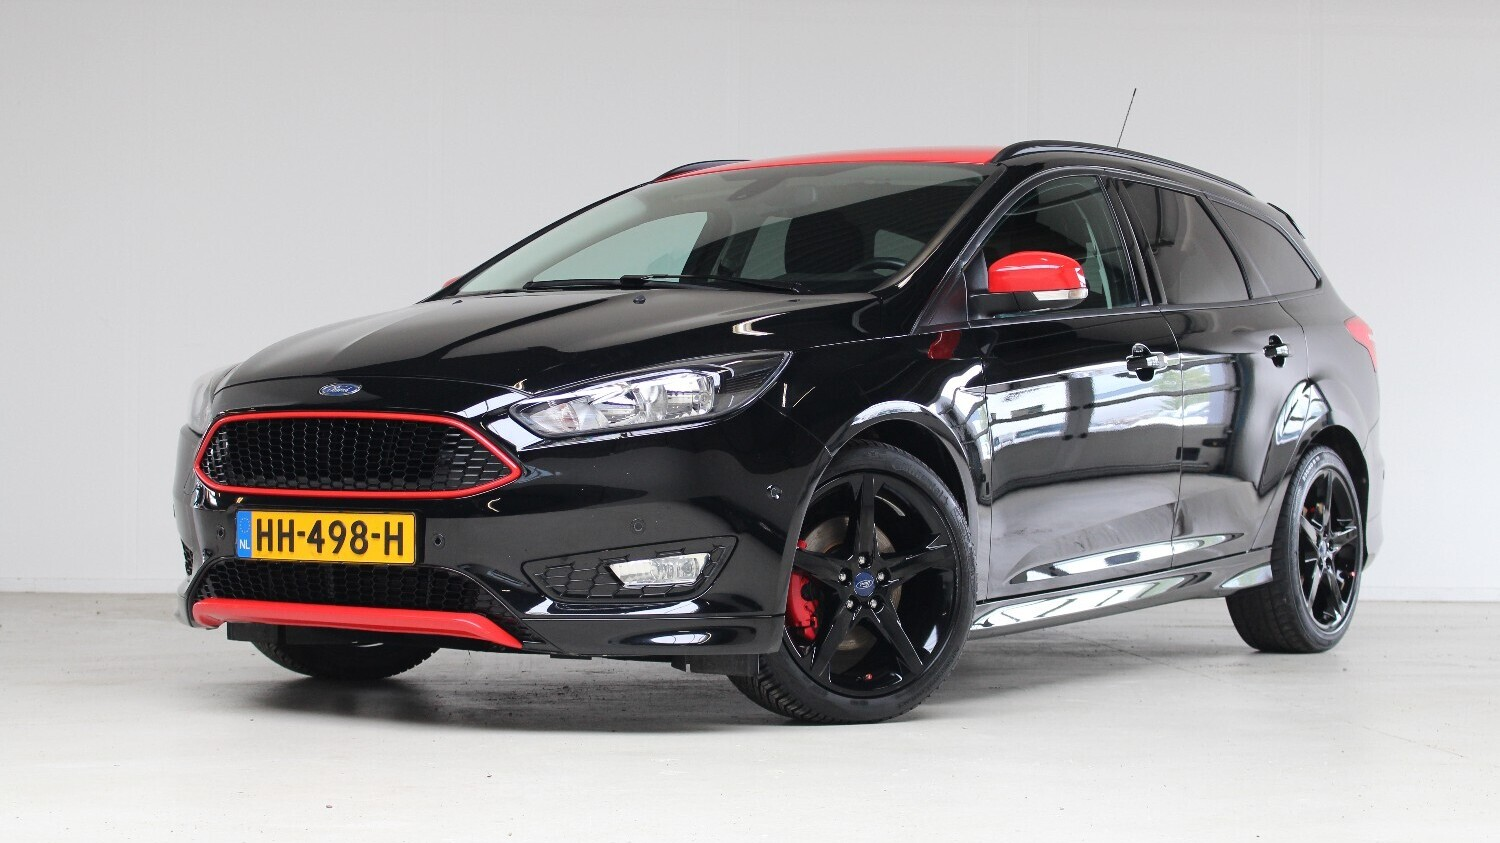 Ford Focus Station 2015 HH-498-H 1